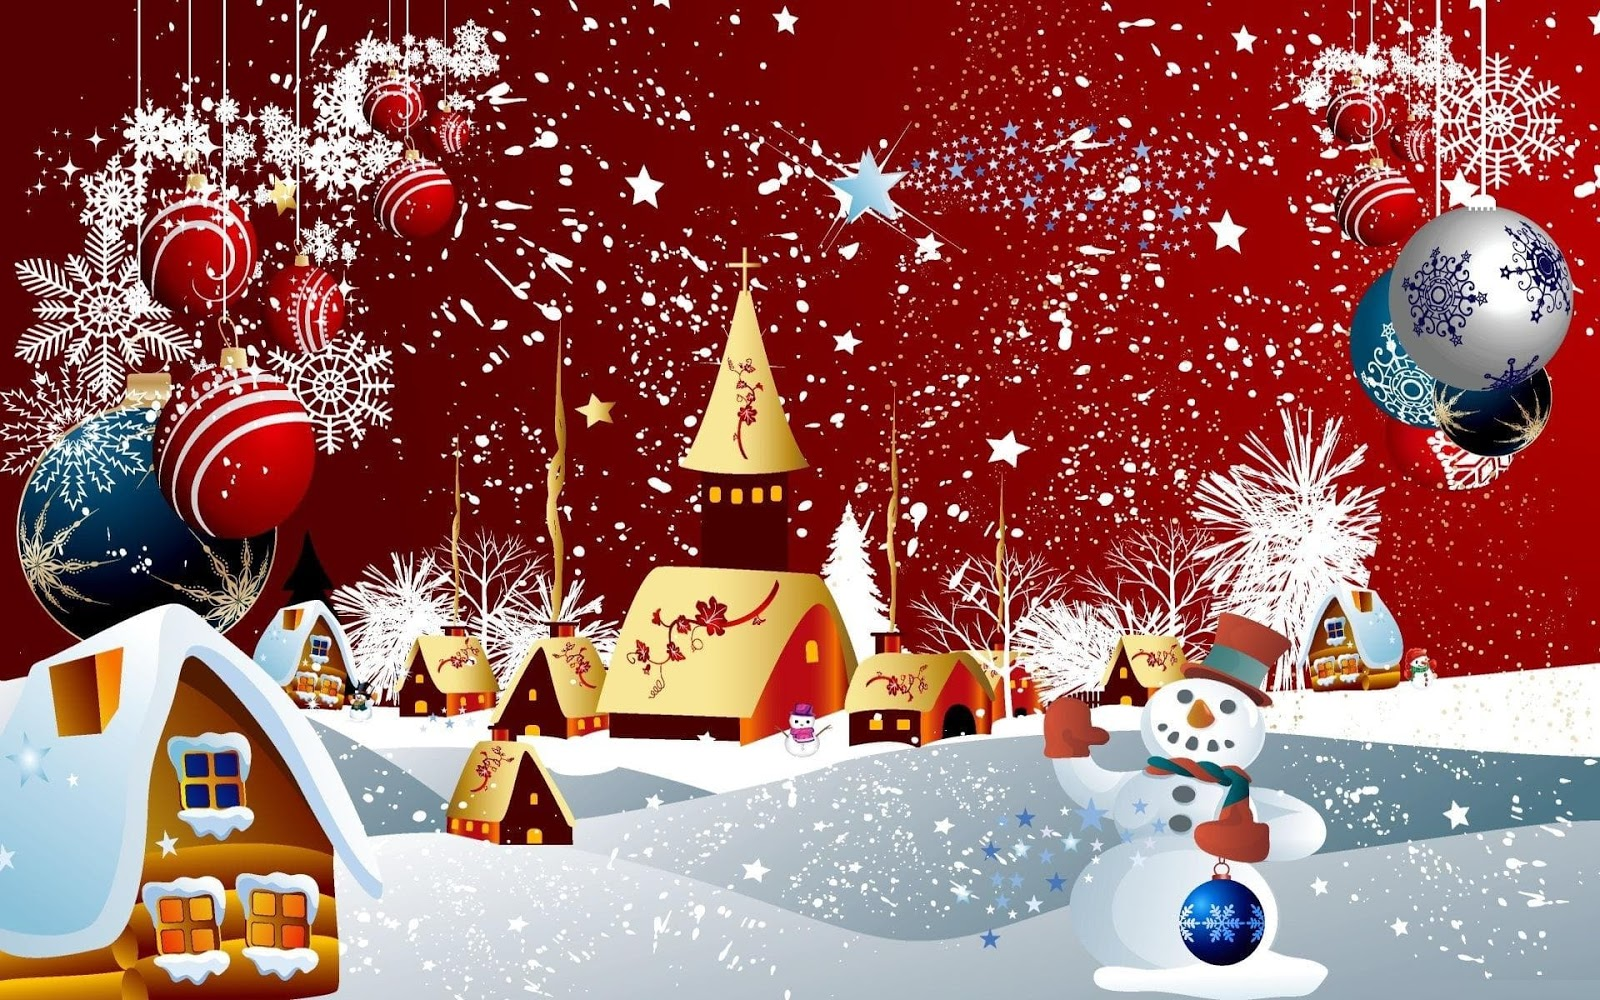 Merry Christmas Wallpapers 23